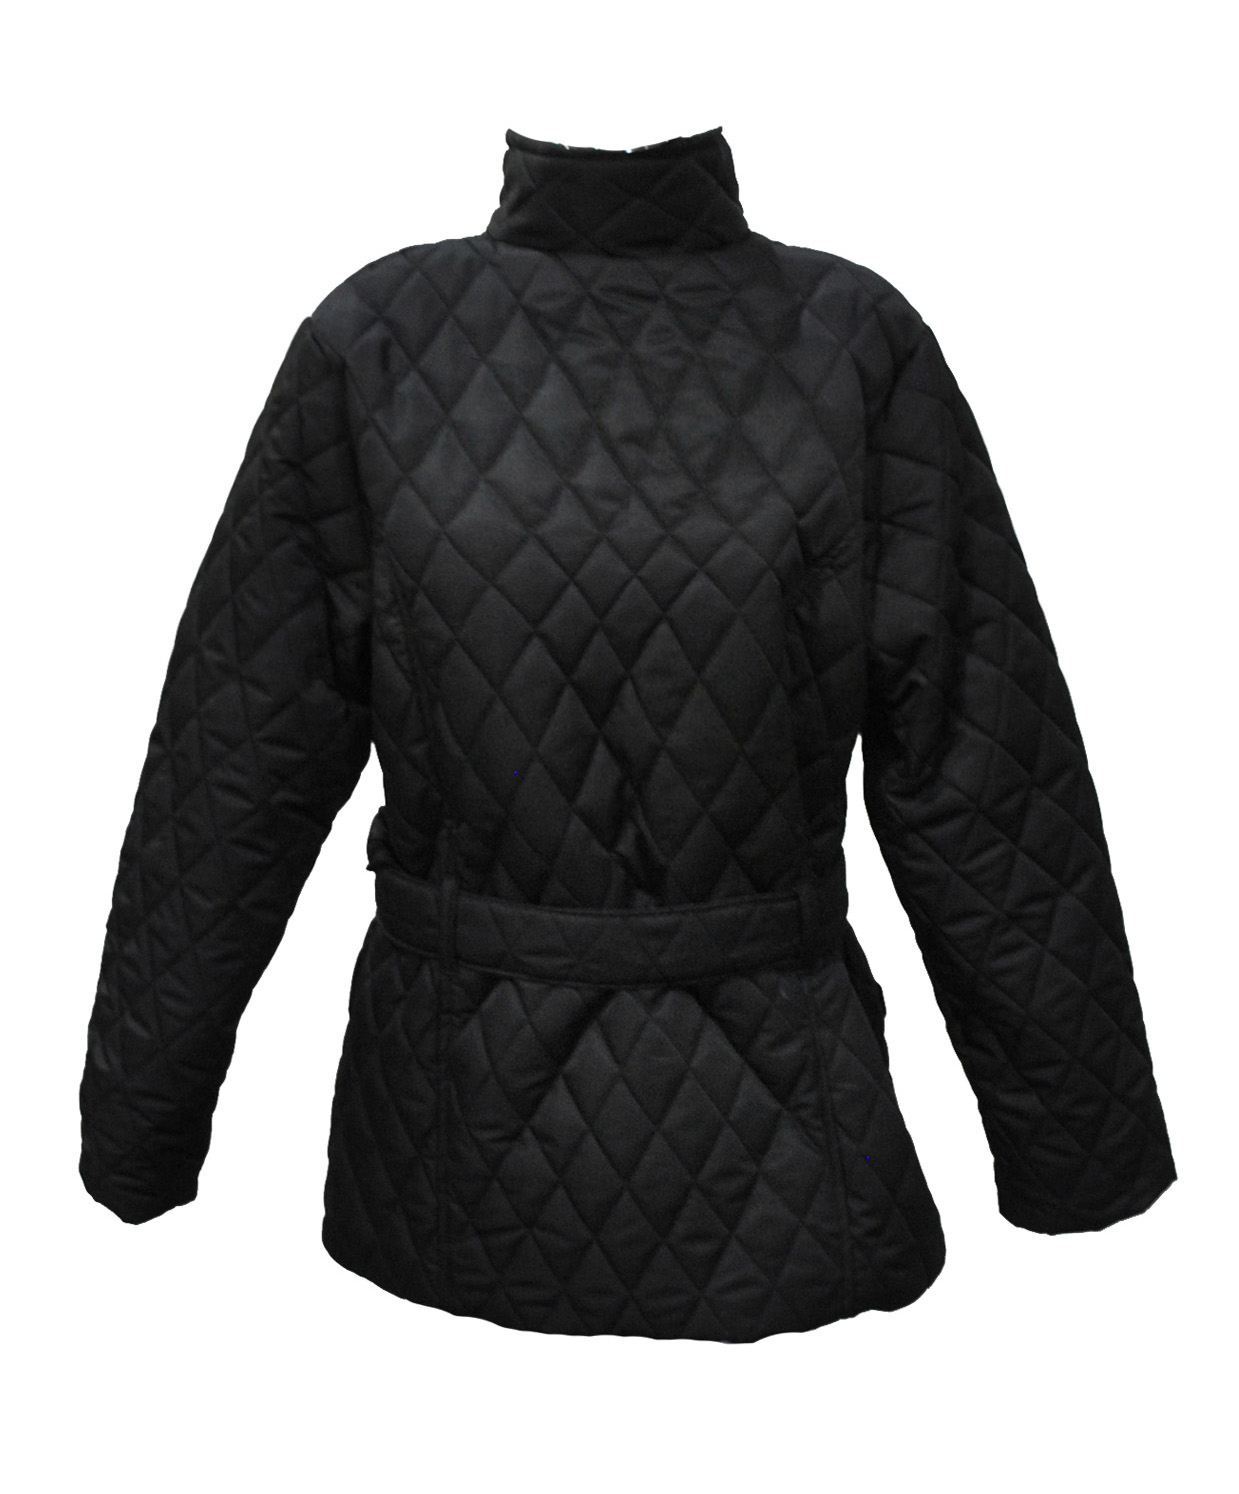 Plus Size Black Quilted Jacket : black quilted ladies jacket - Adamdwight.com